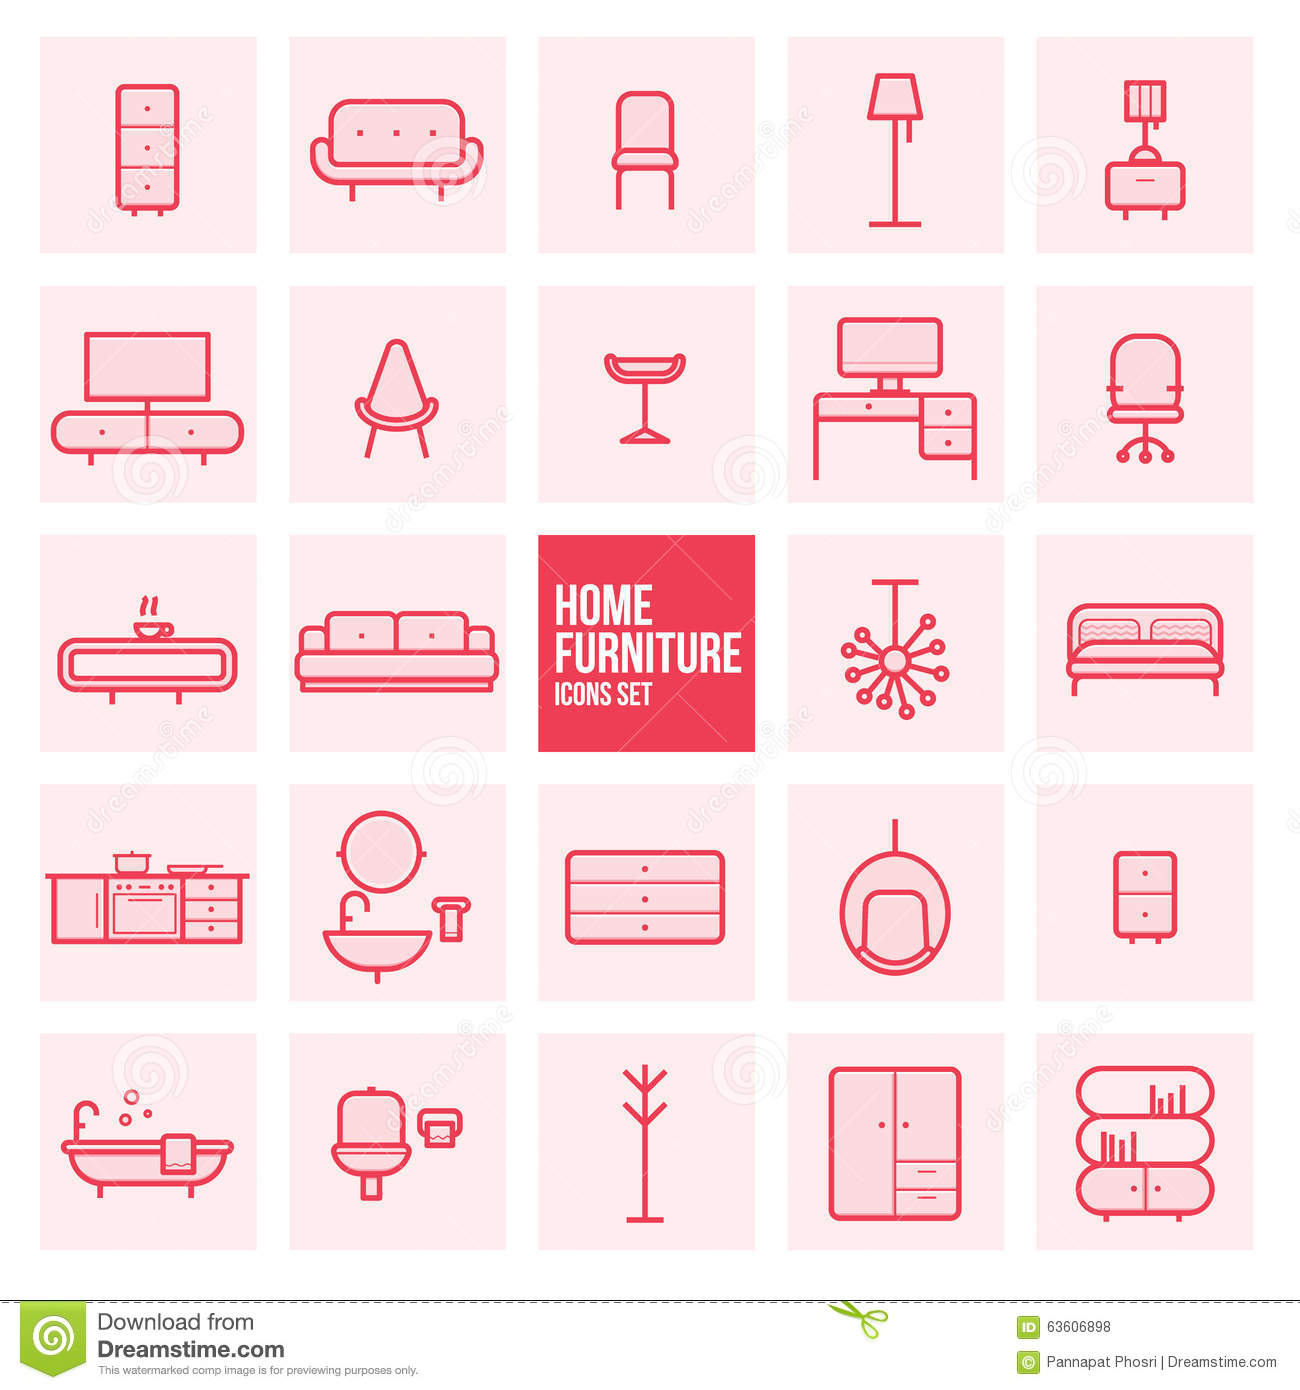 Home Furnishing Websites: Set Of Simple Thin Line Design Home Furniture Vector Icons